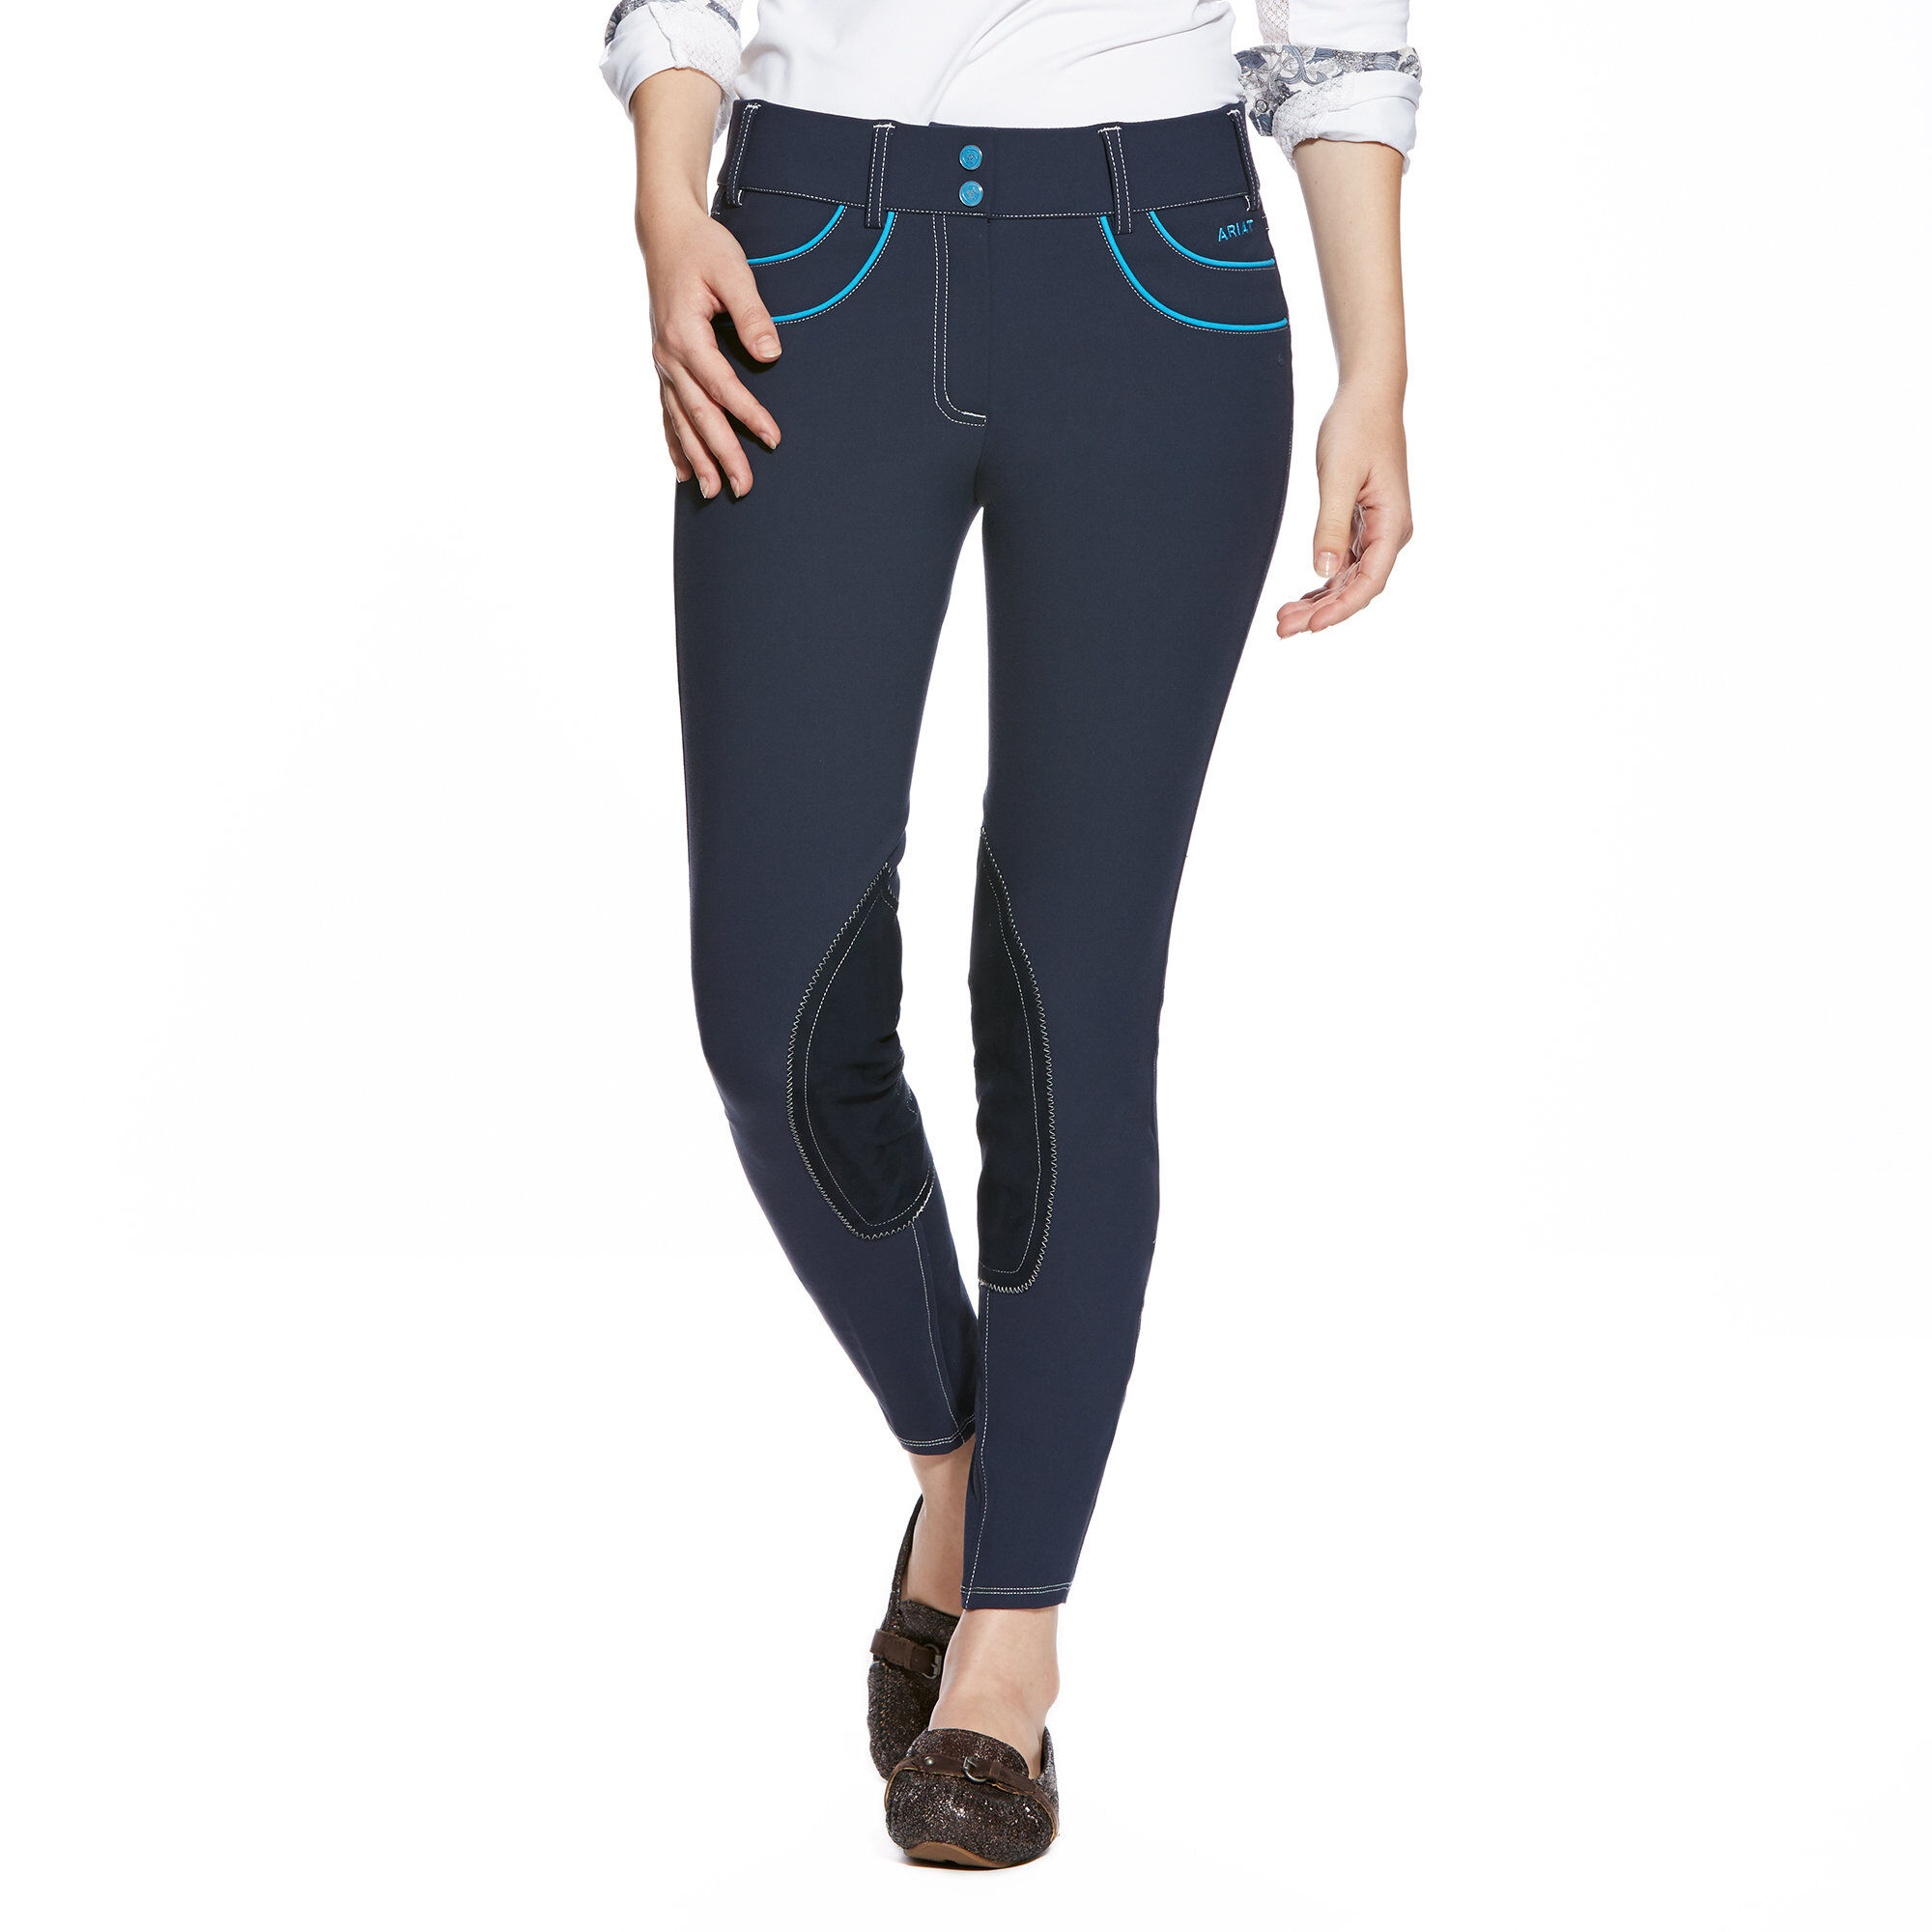 Olympia Acclaim LR Front Zip Knee Patch Breech